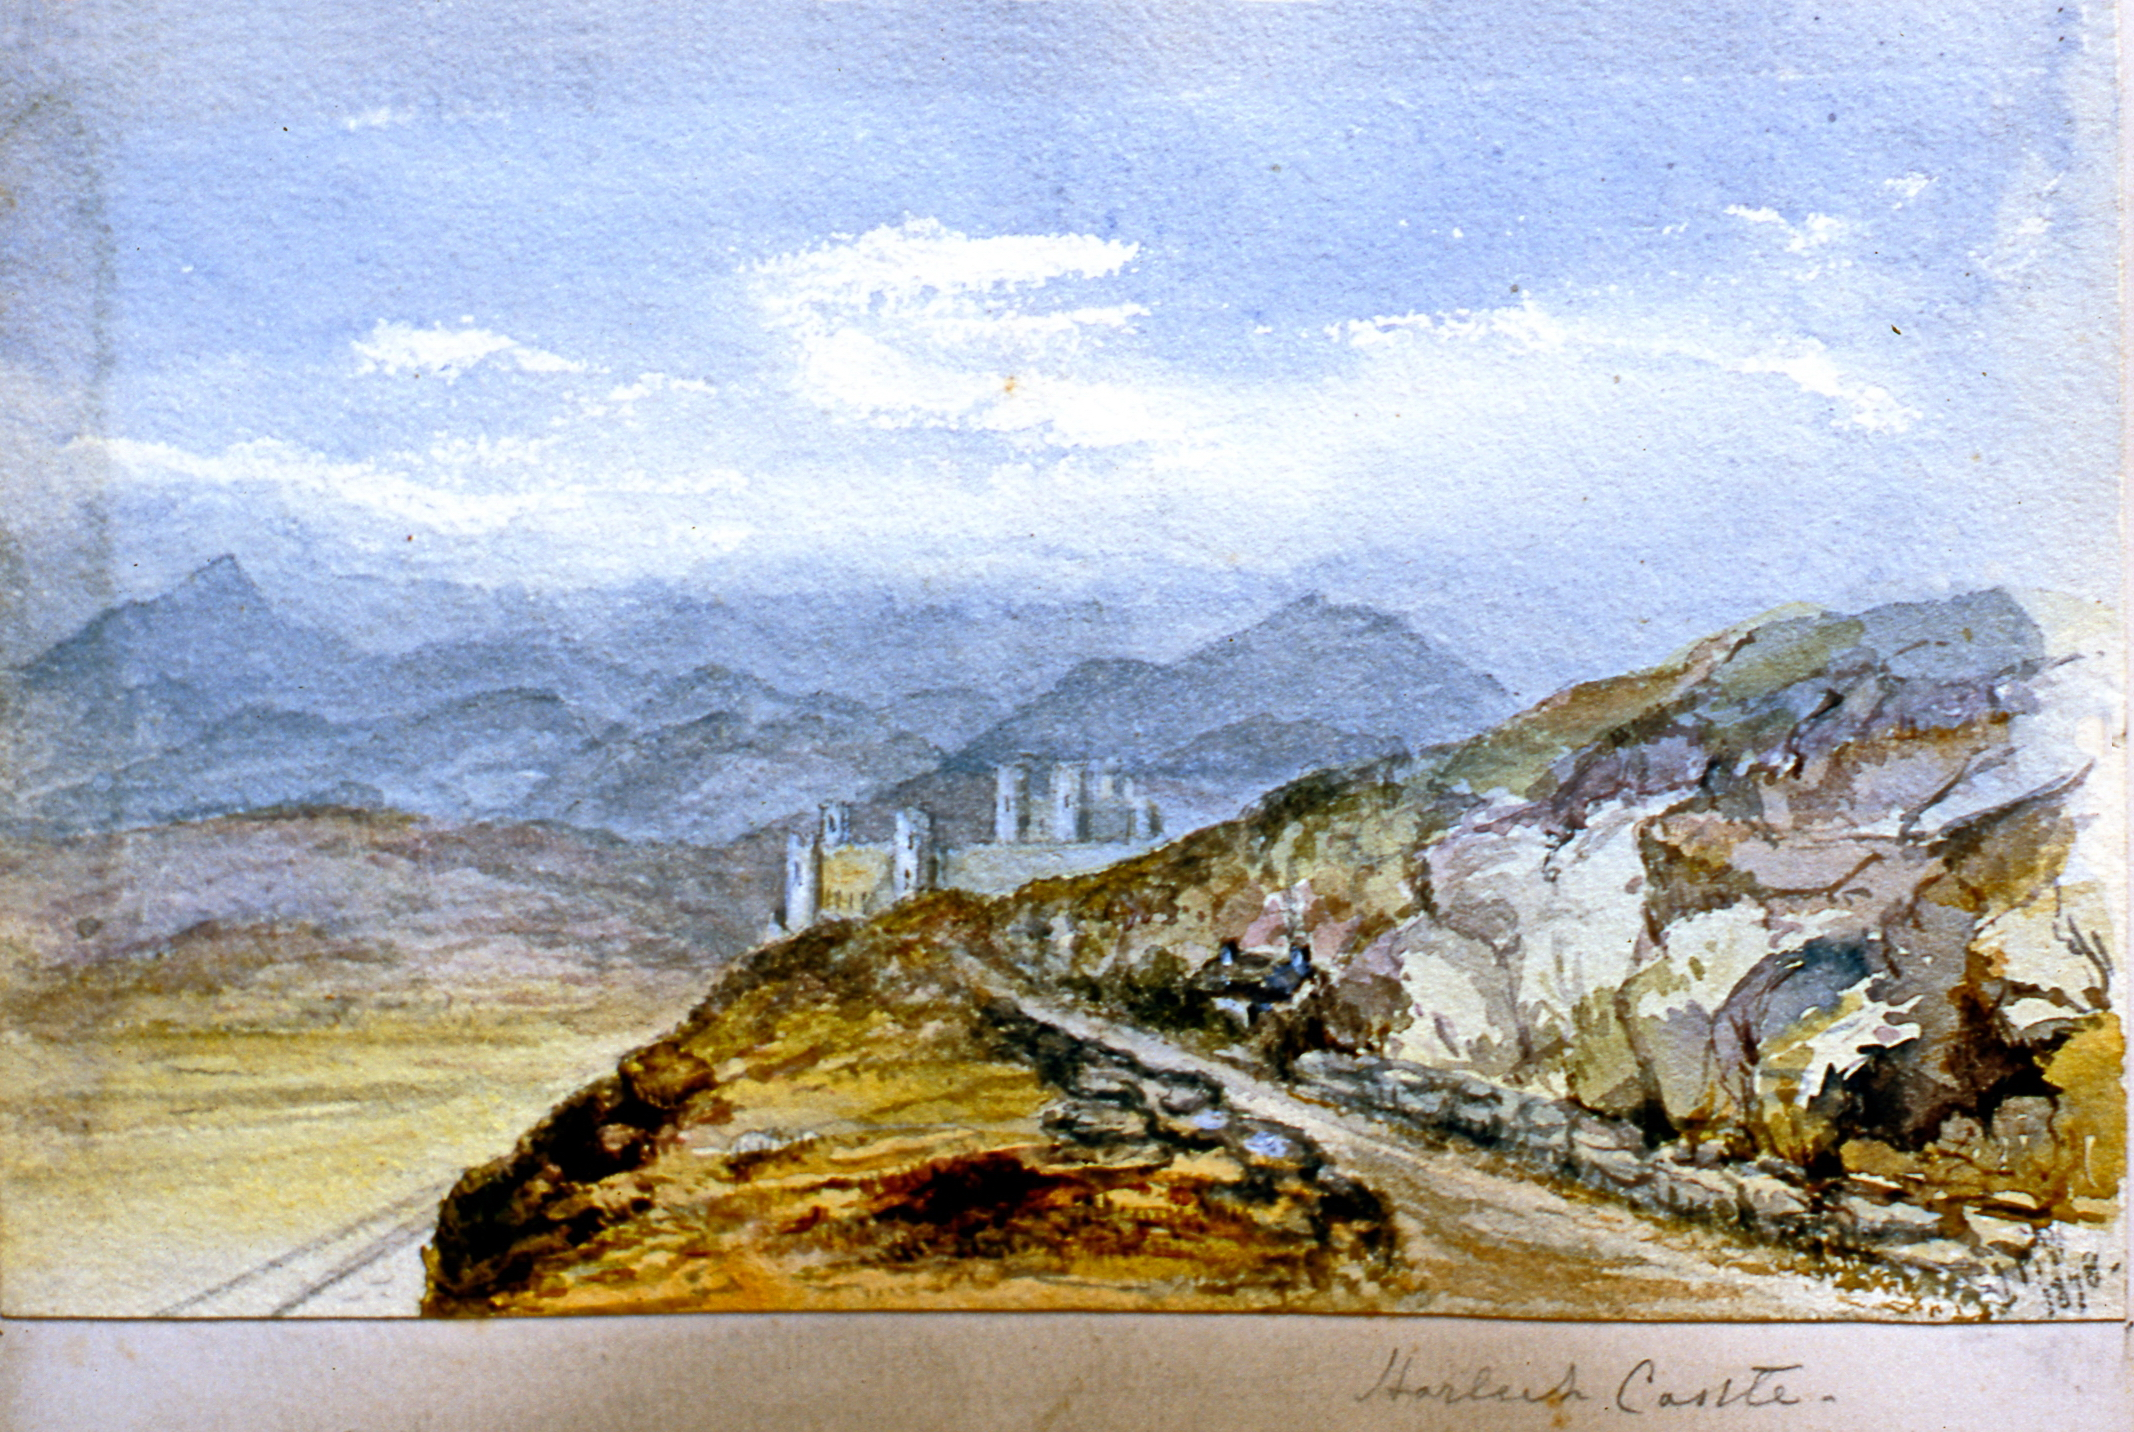 "Harleck Castle , 1878, Julia Bullock Webster, watercolour on paper, 5 1/2"" x 9"", 2003.02.49, gift of The Grist Mill at Keremeos"